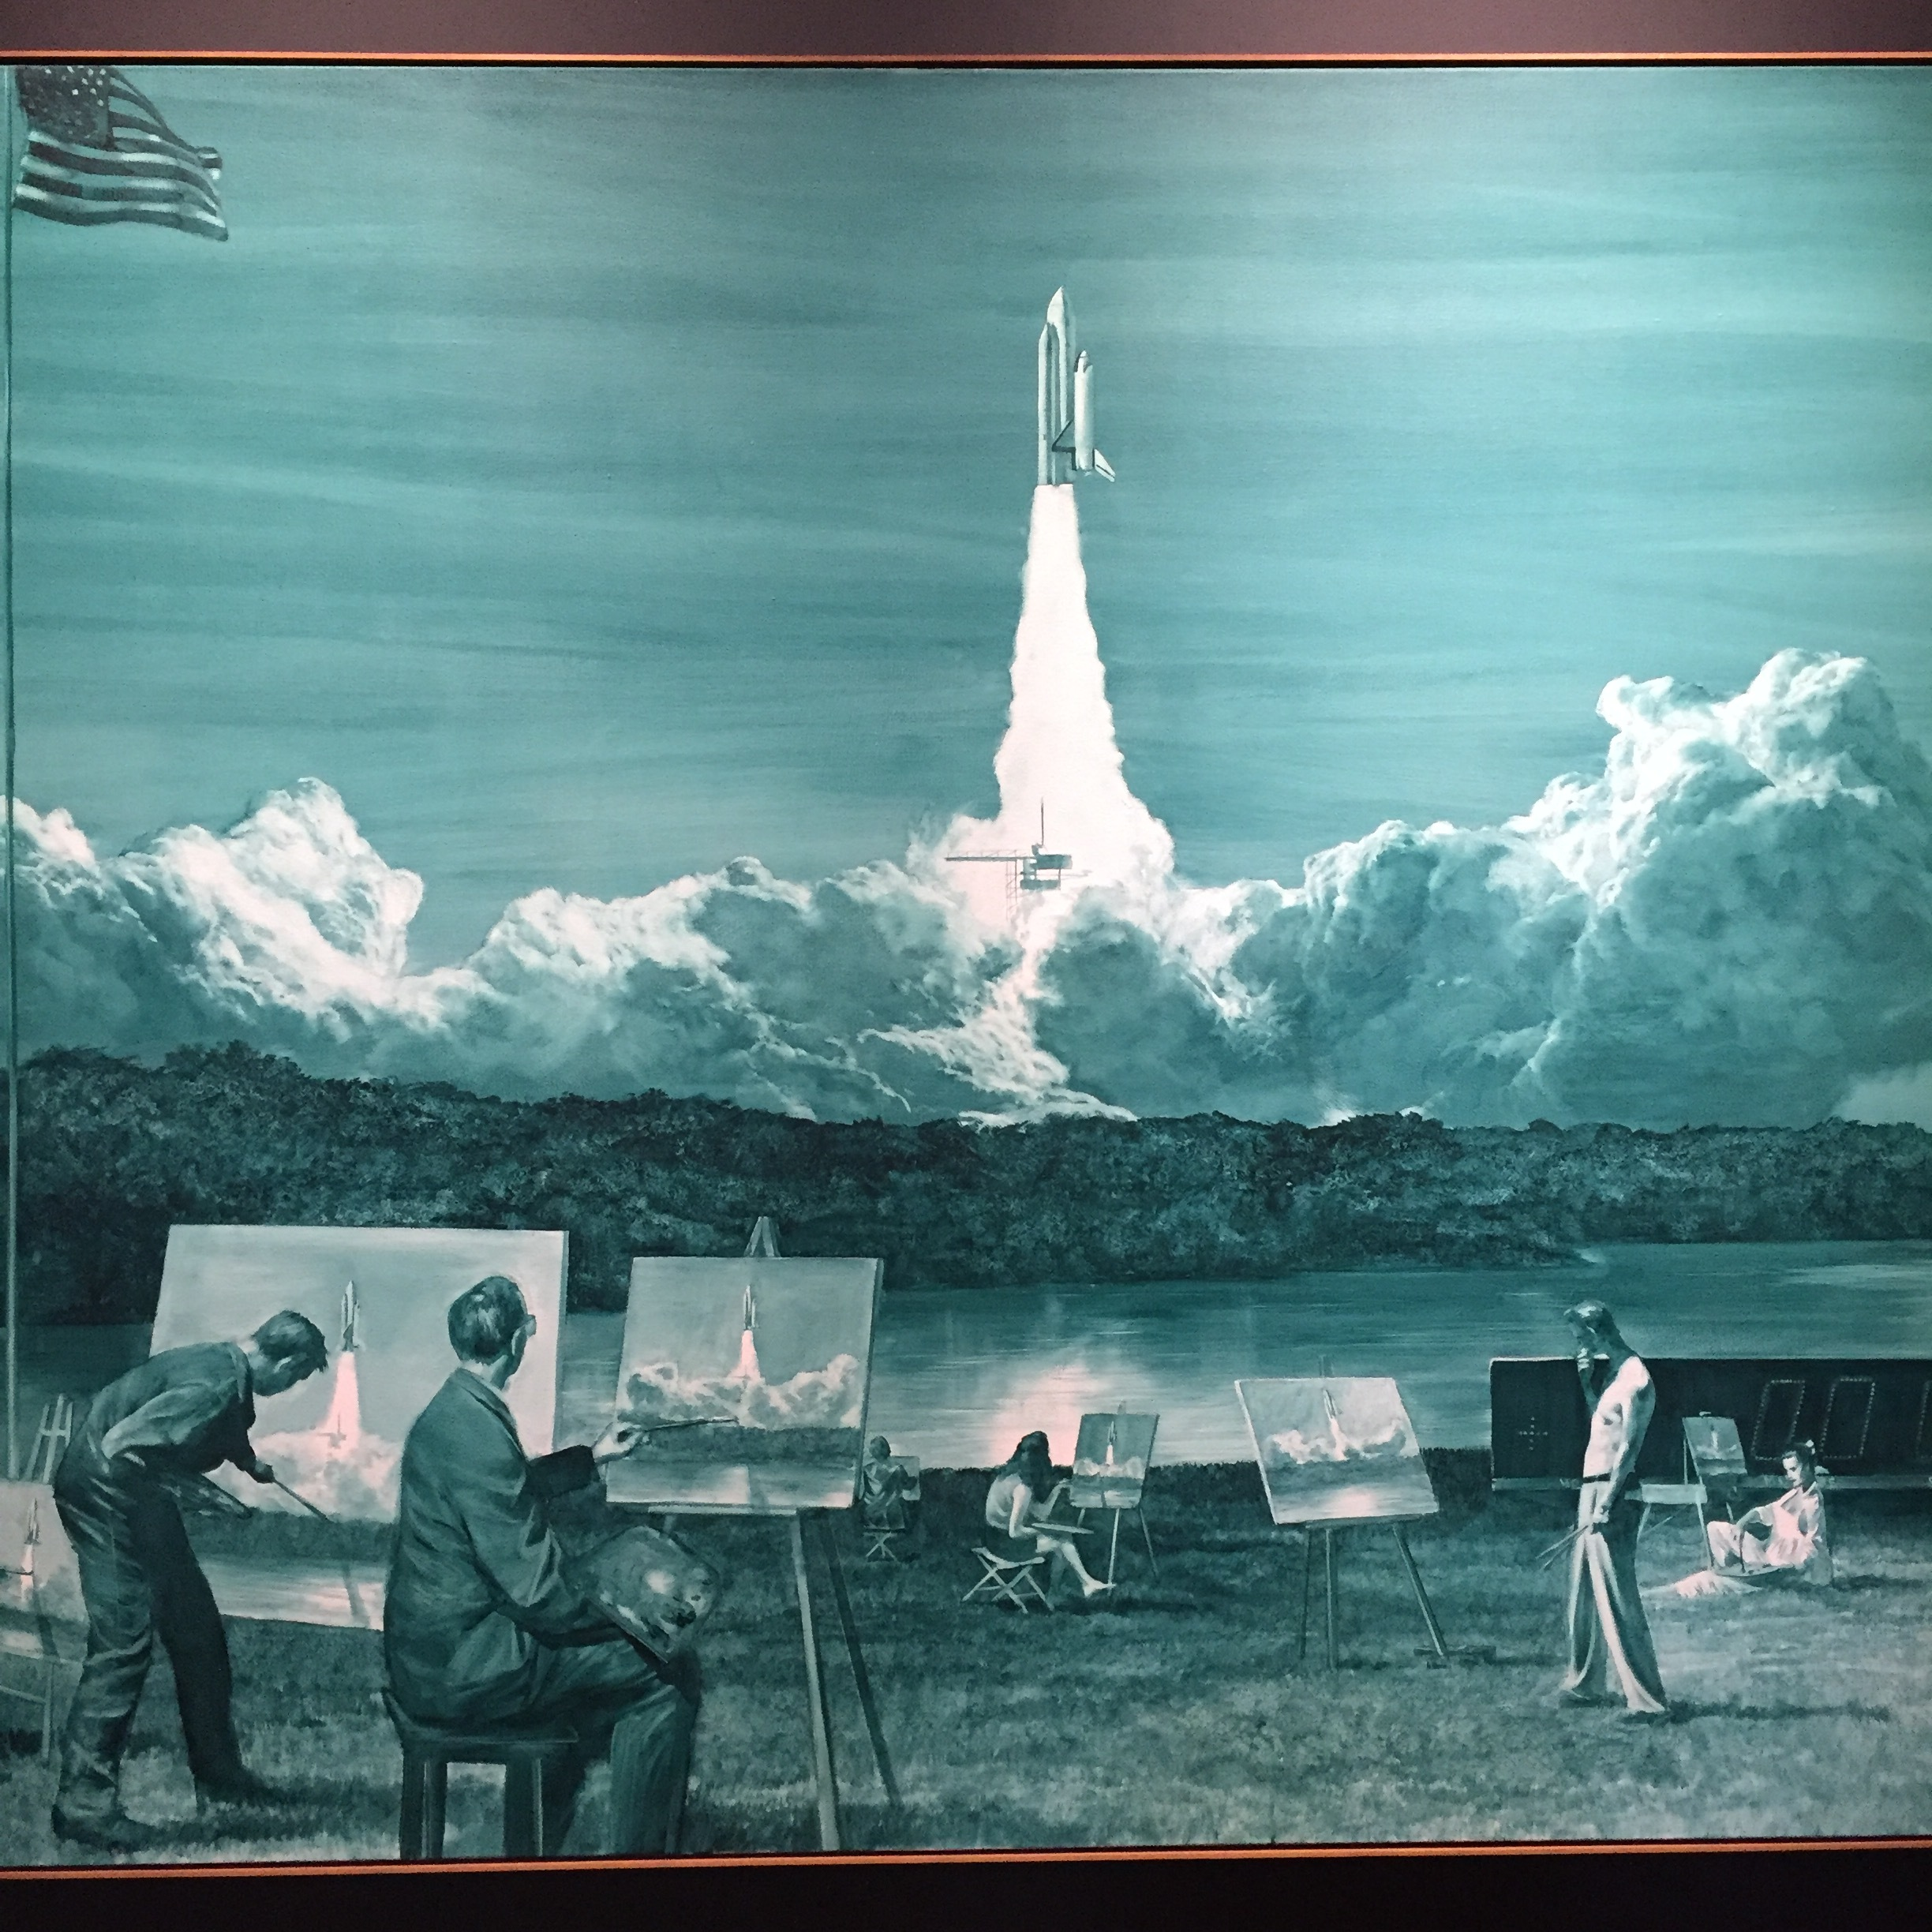 Mark Tansey,  Action Painting II  (1984). I stopped and staired at this work a long time. It really moved me. I have to go back to the museum to look at it again.